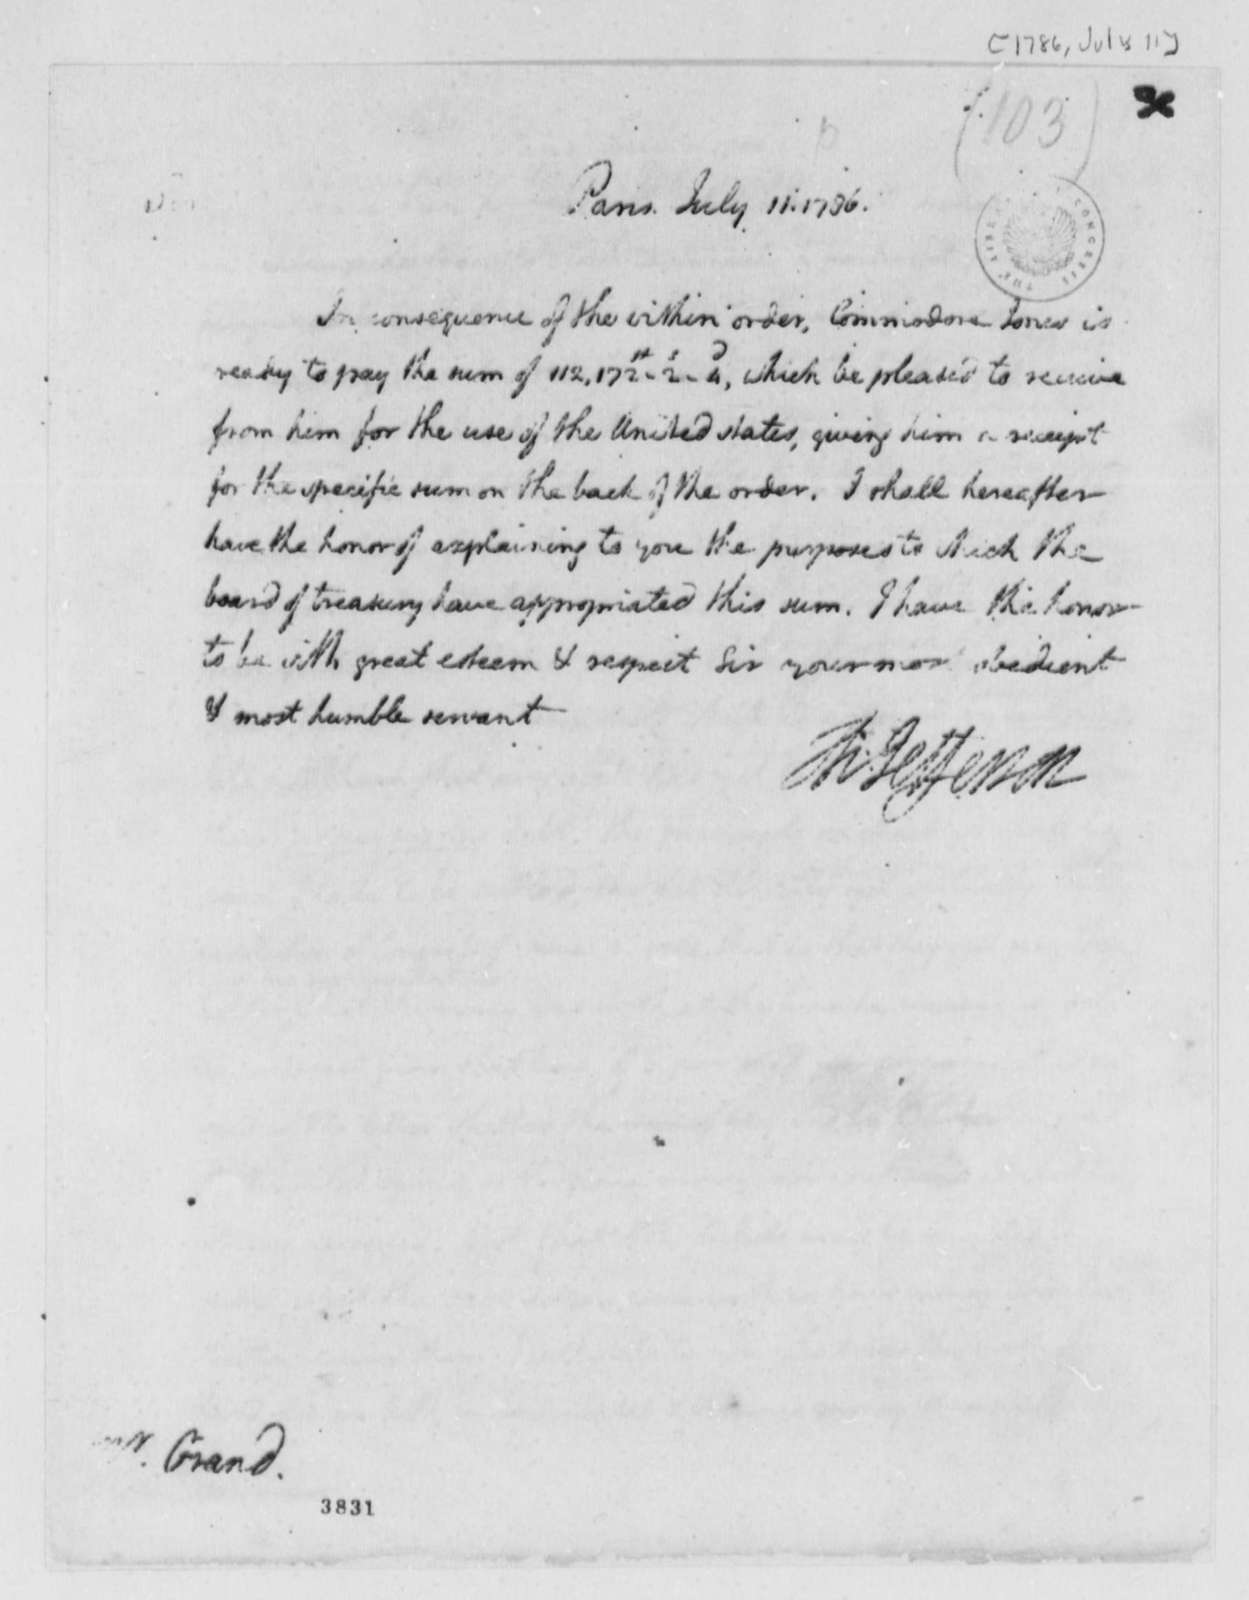 Thomas Jefferson to Ferdinand Grand, July 11, 1786